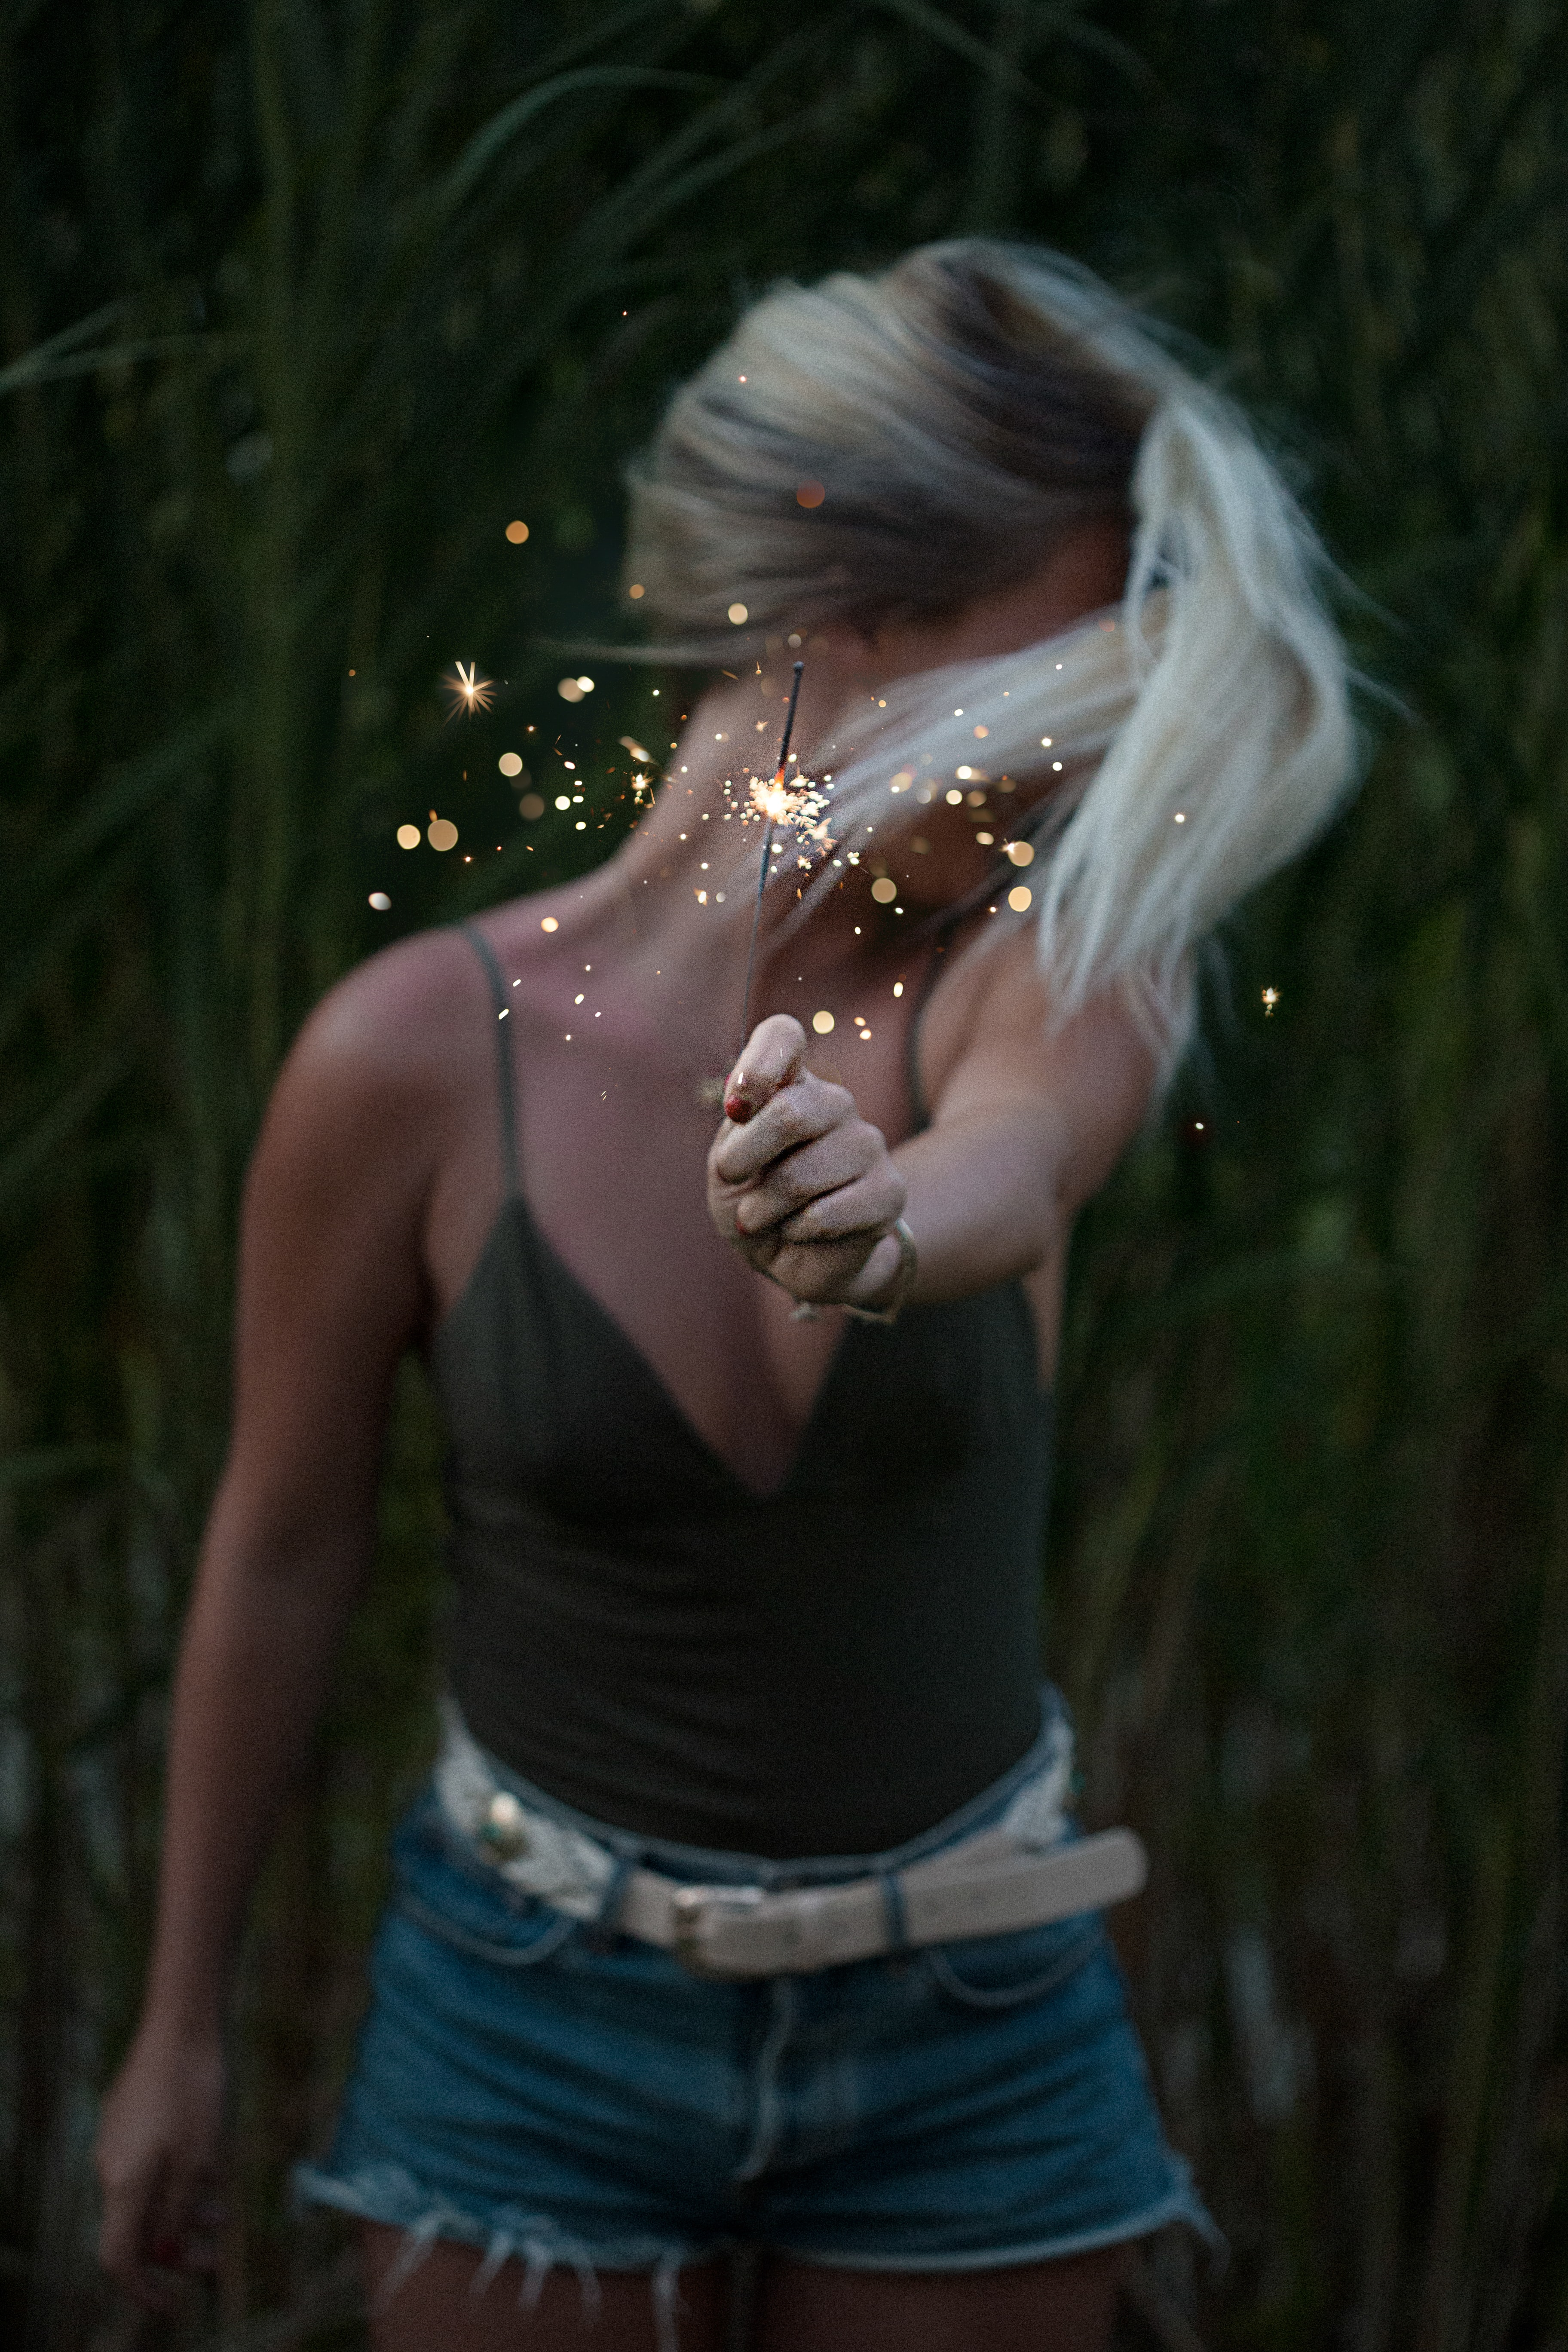 A blonde woman holding a lit sparkler and looking away